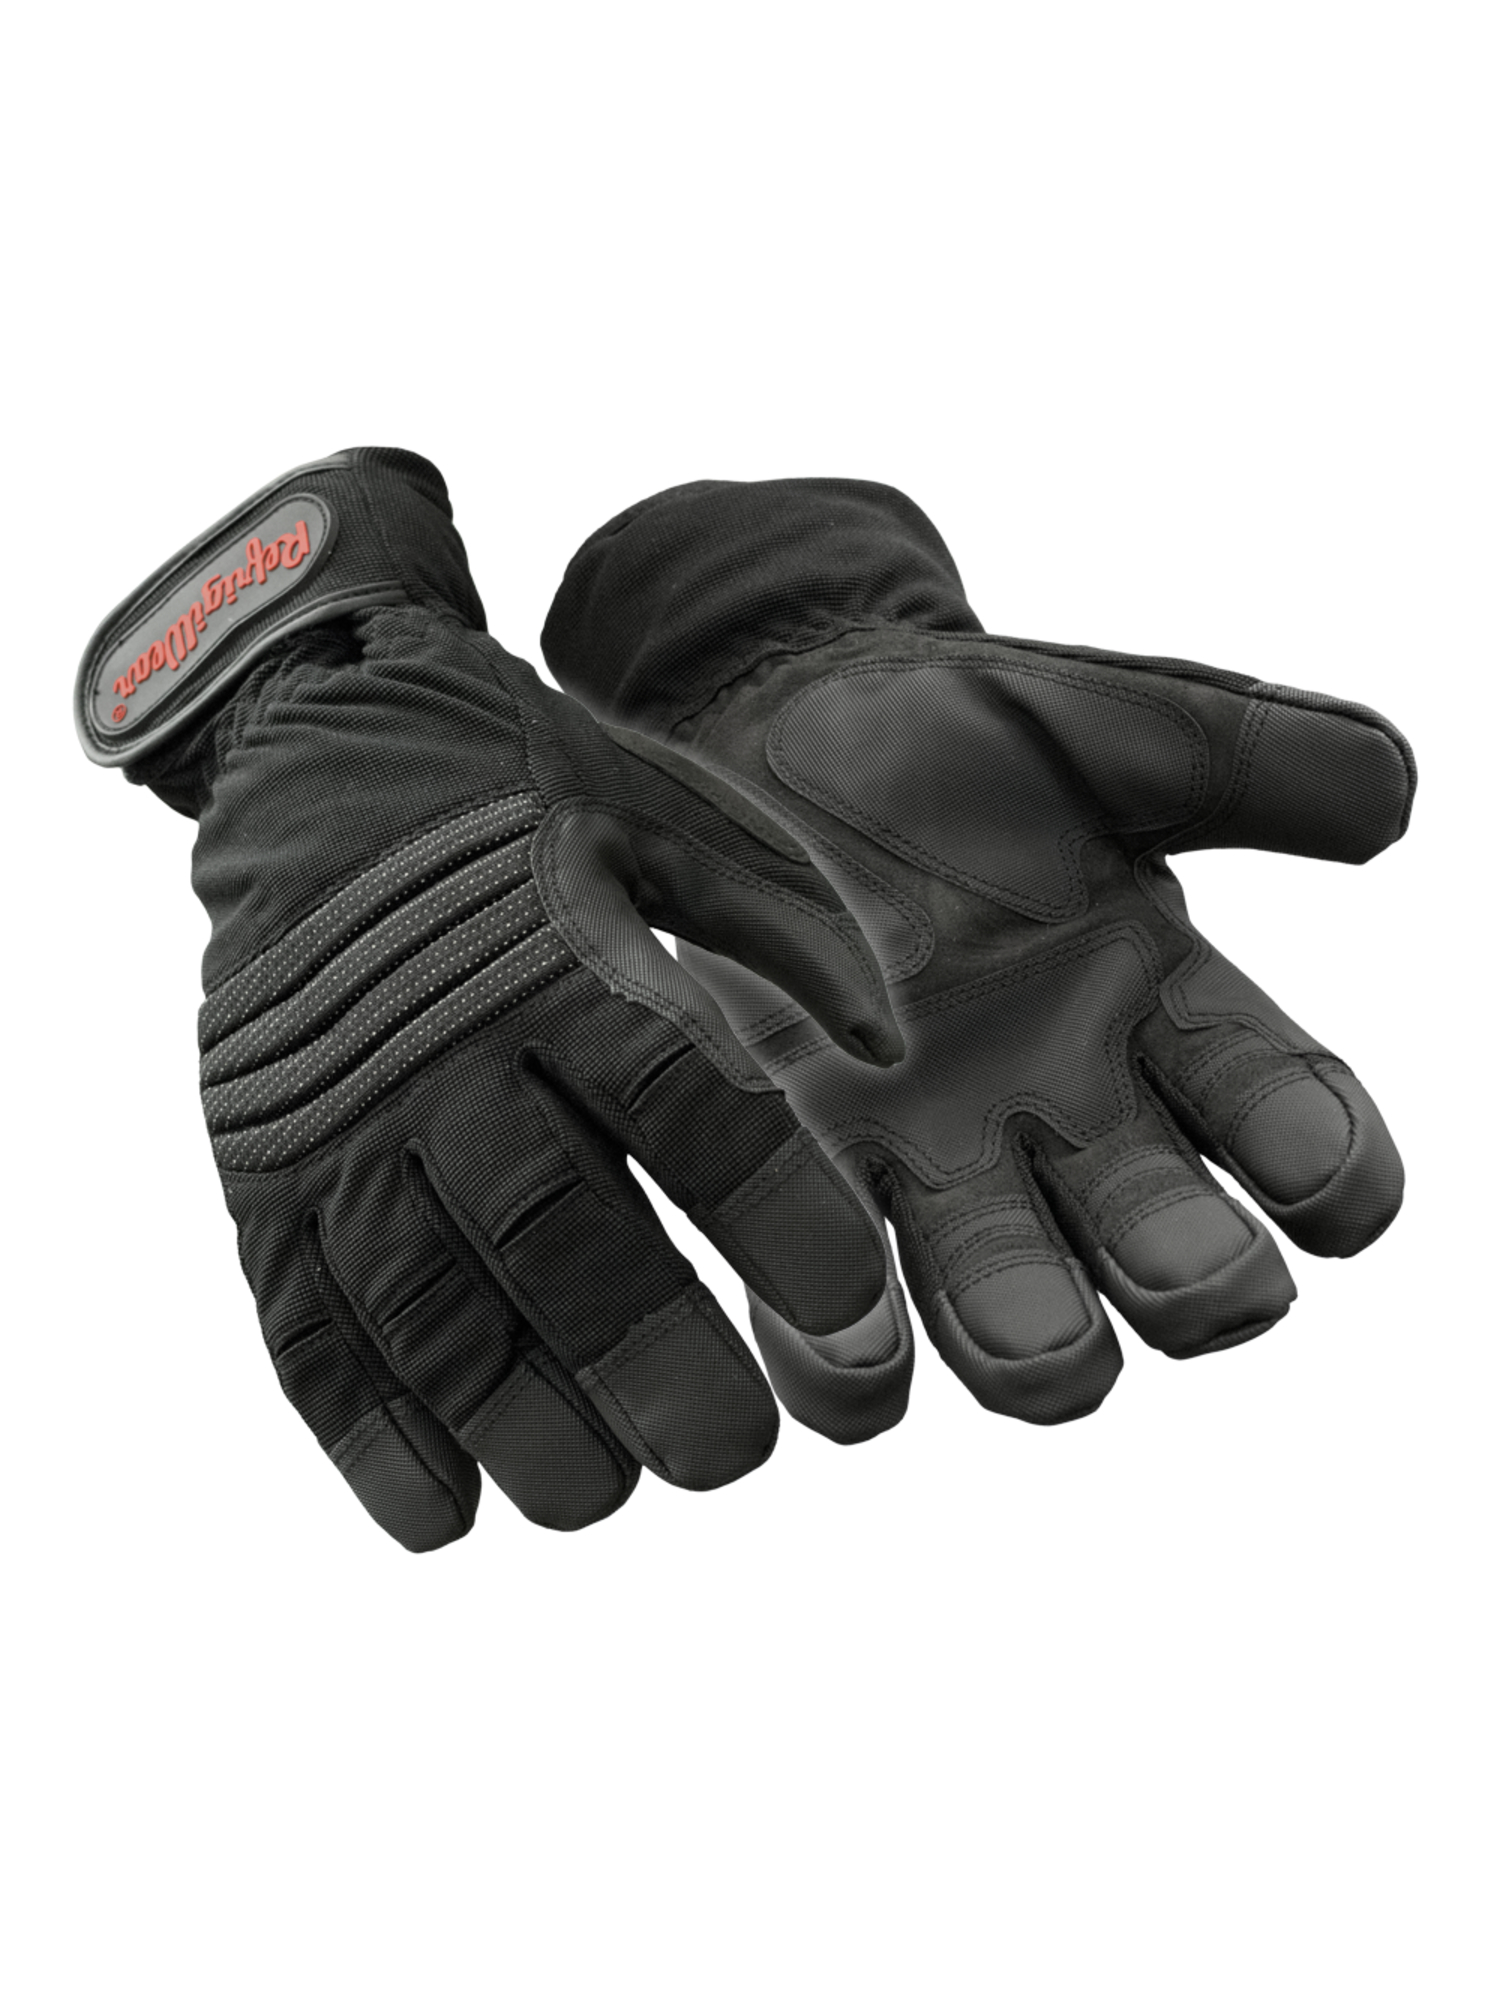 Mens winter gloves xxl - Arcticfit